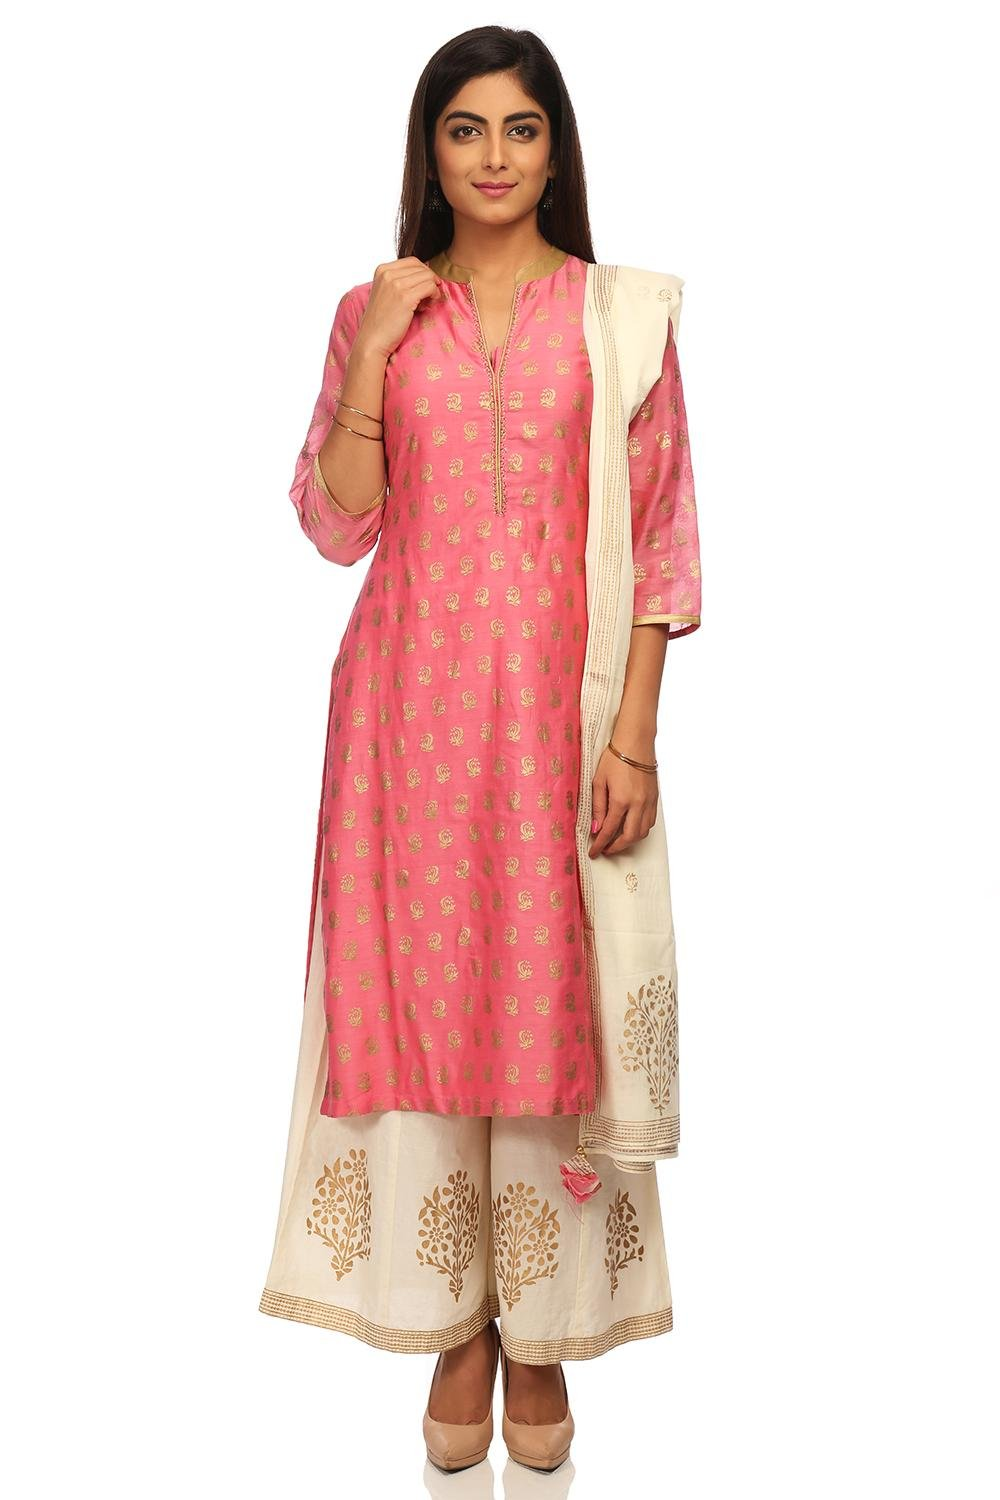 BIBA Women's Pink Straight Cotton Silk Suit Set Size 38